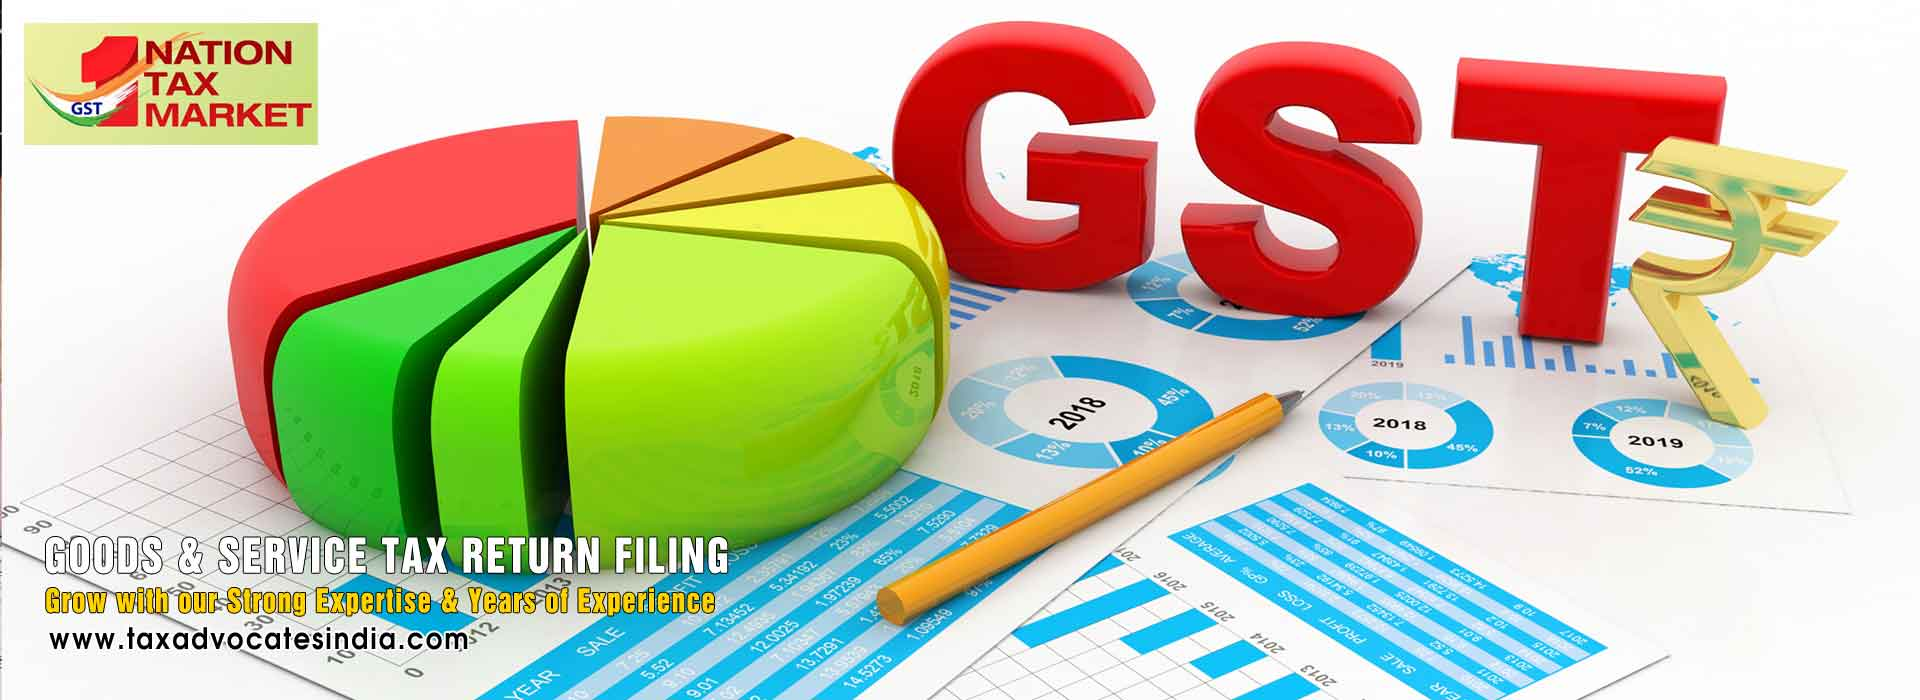 Income Tax Advocate GST Return Filing Consultants advisors in Ludhiana Punjab India